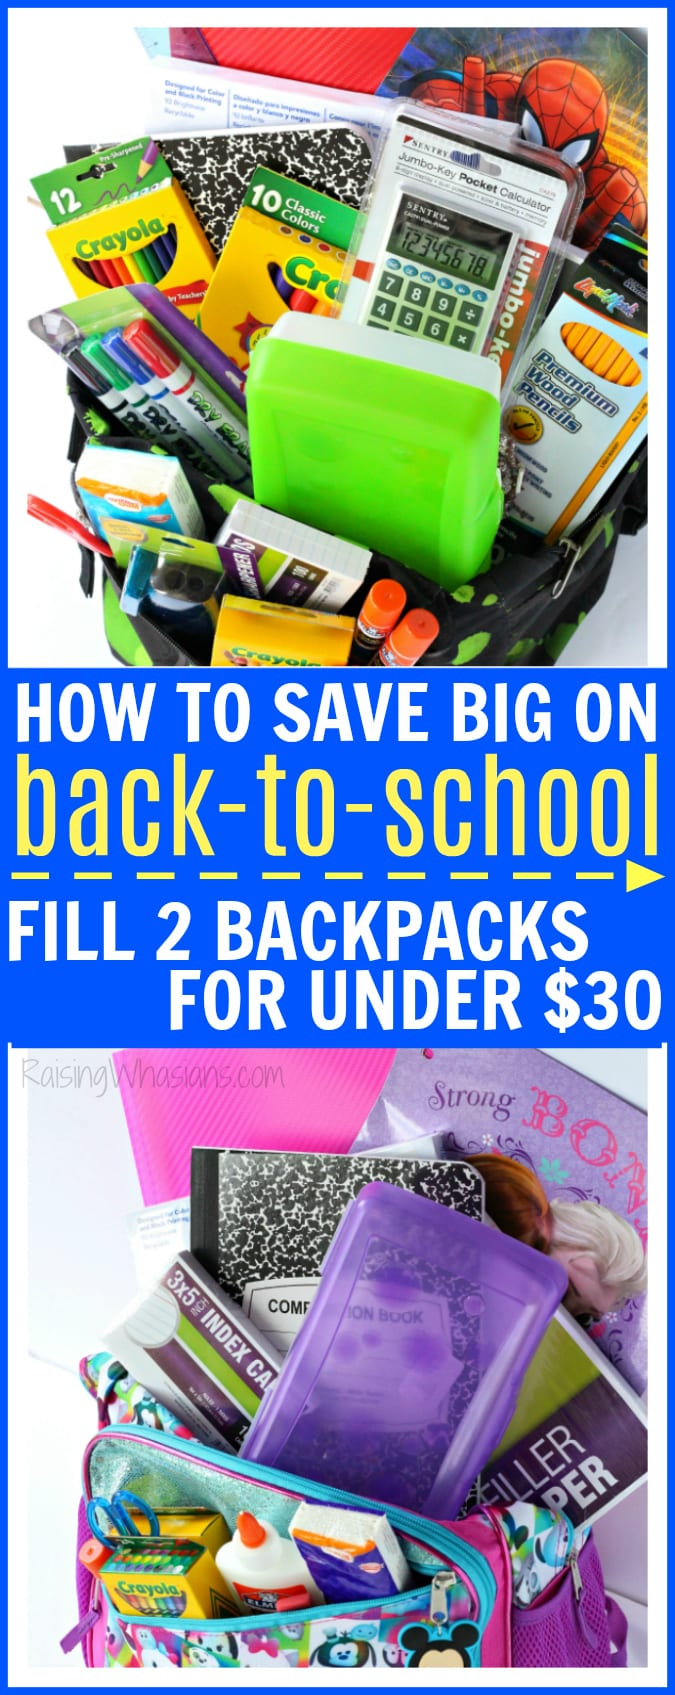 How to save big on back-to-school fill backpacks pinterest